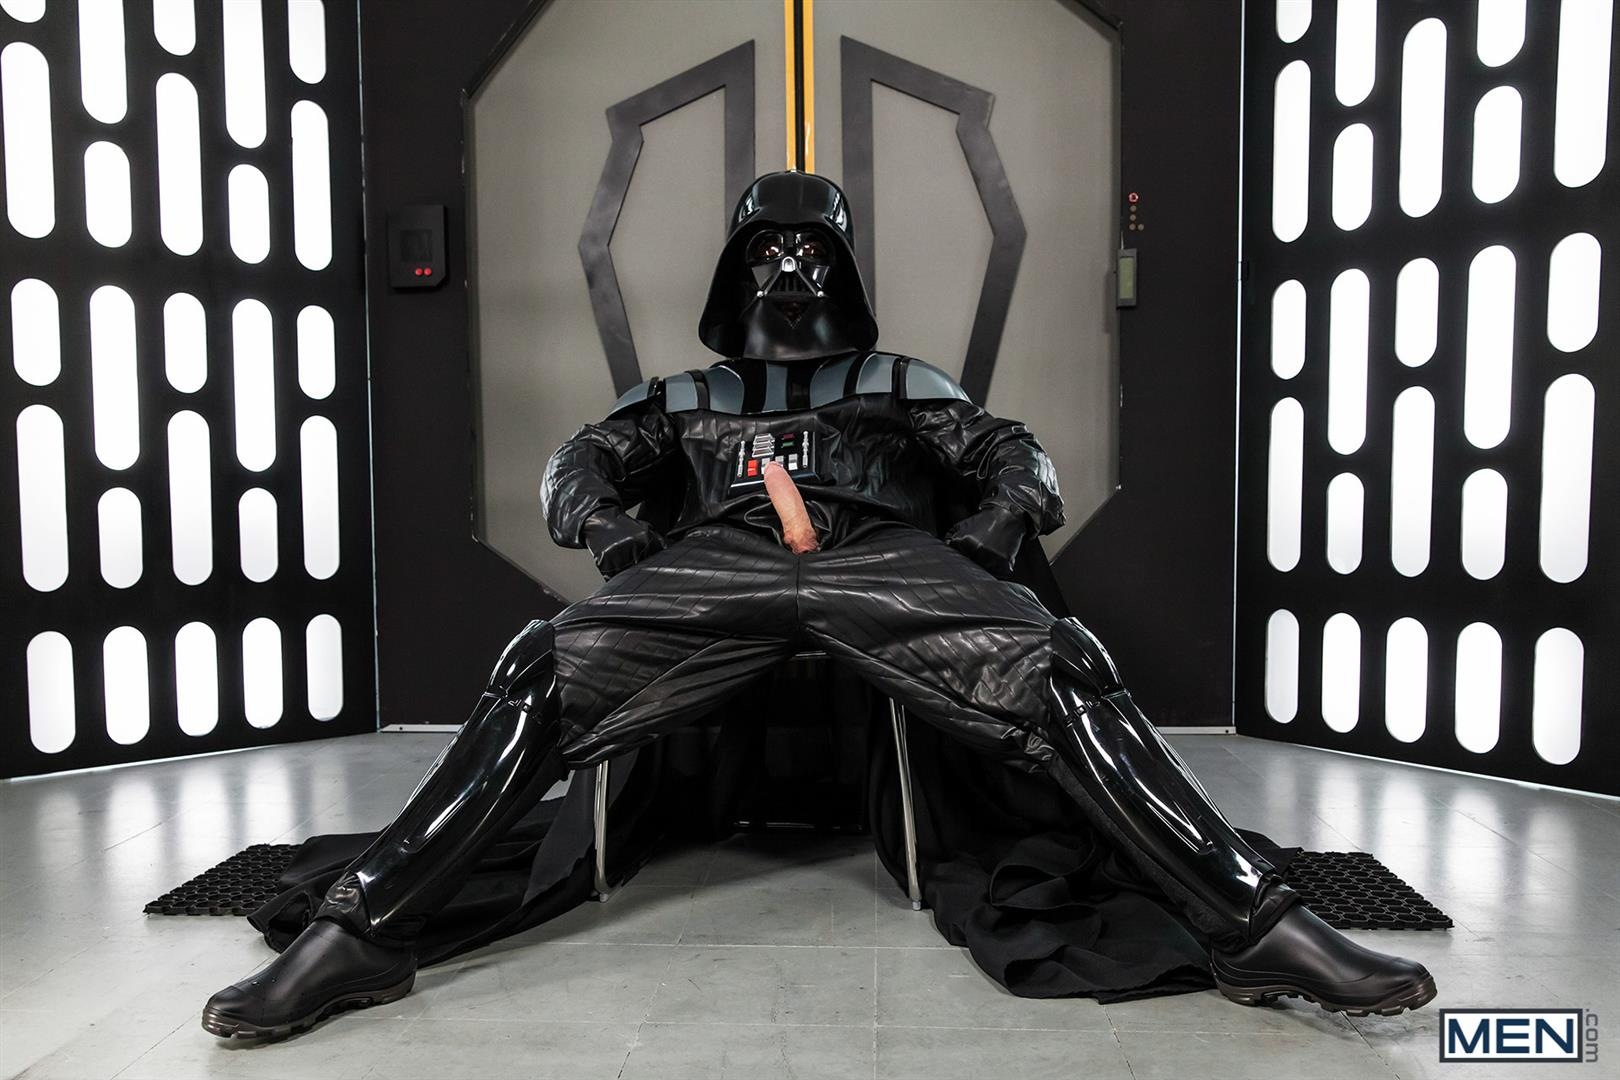 Men-Dennis-West-Gay-Star-Wars-Parody-XXX-Amateur-Gay-Porn-19 Who Knew that Darth Vader Likes To Fuck Man Ass?